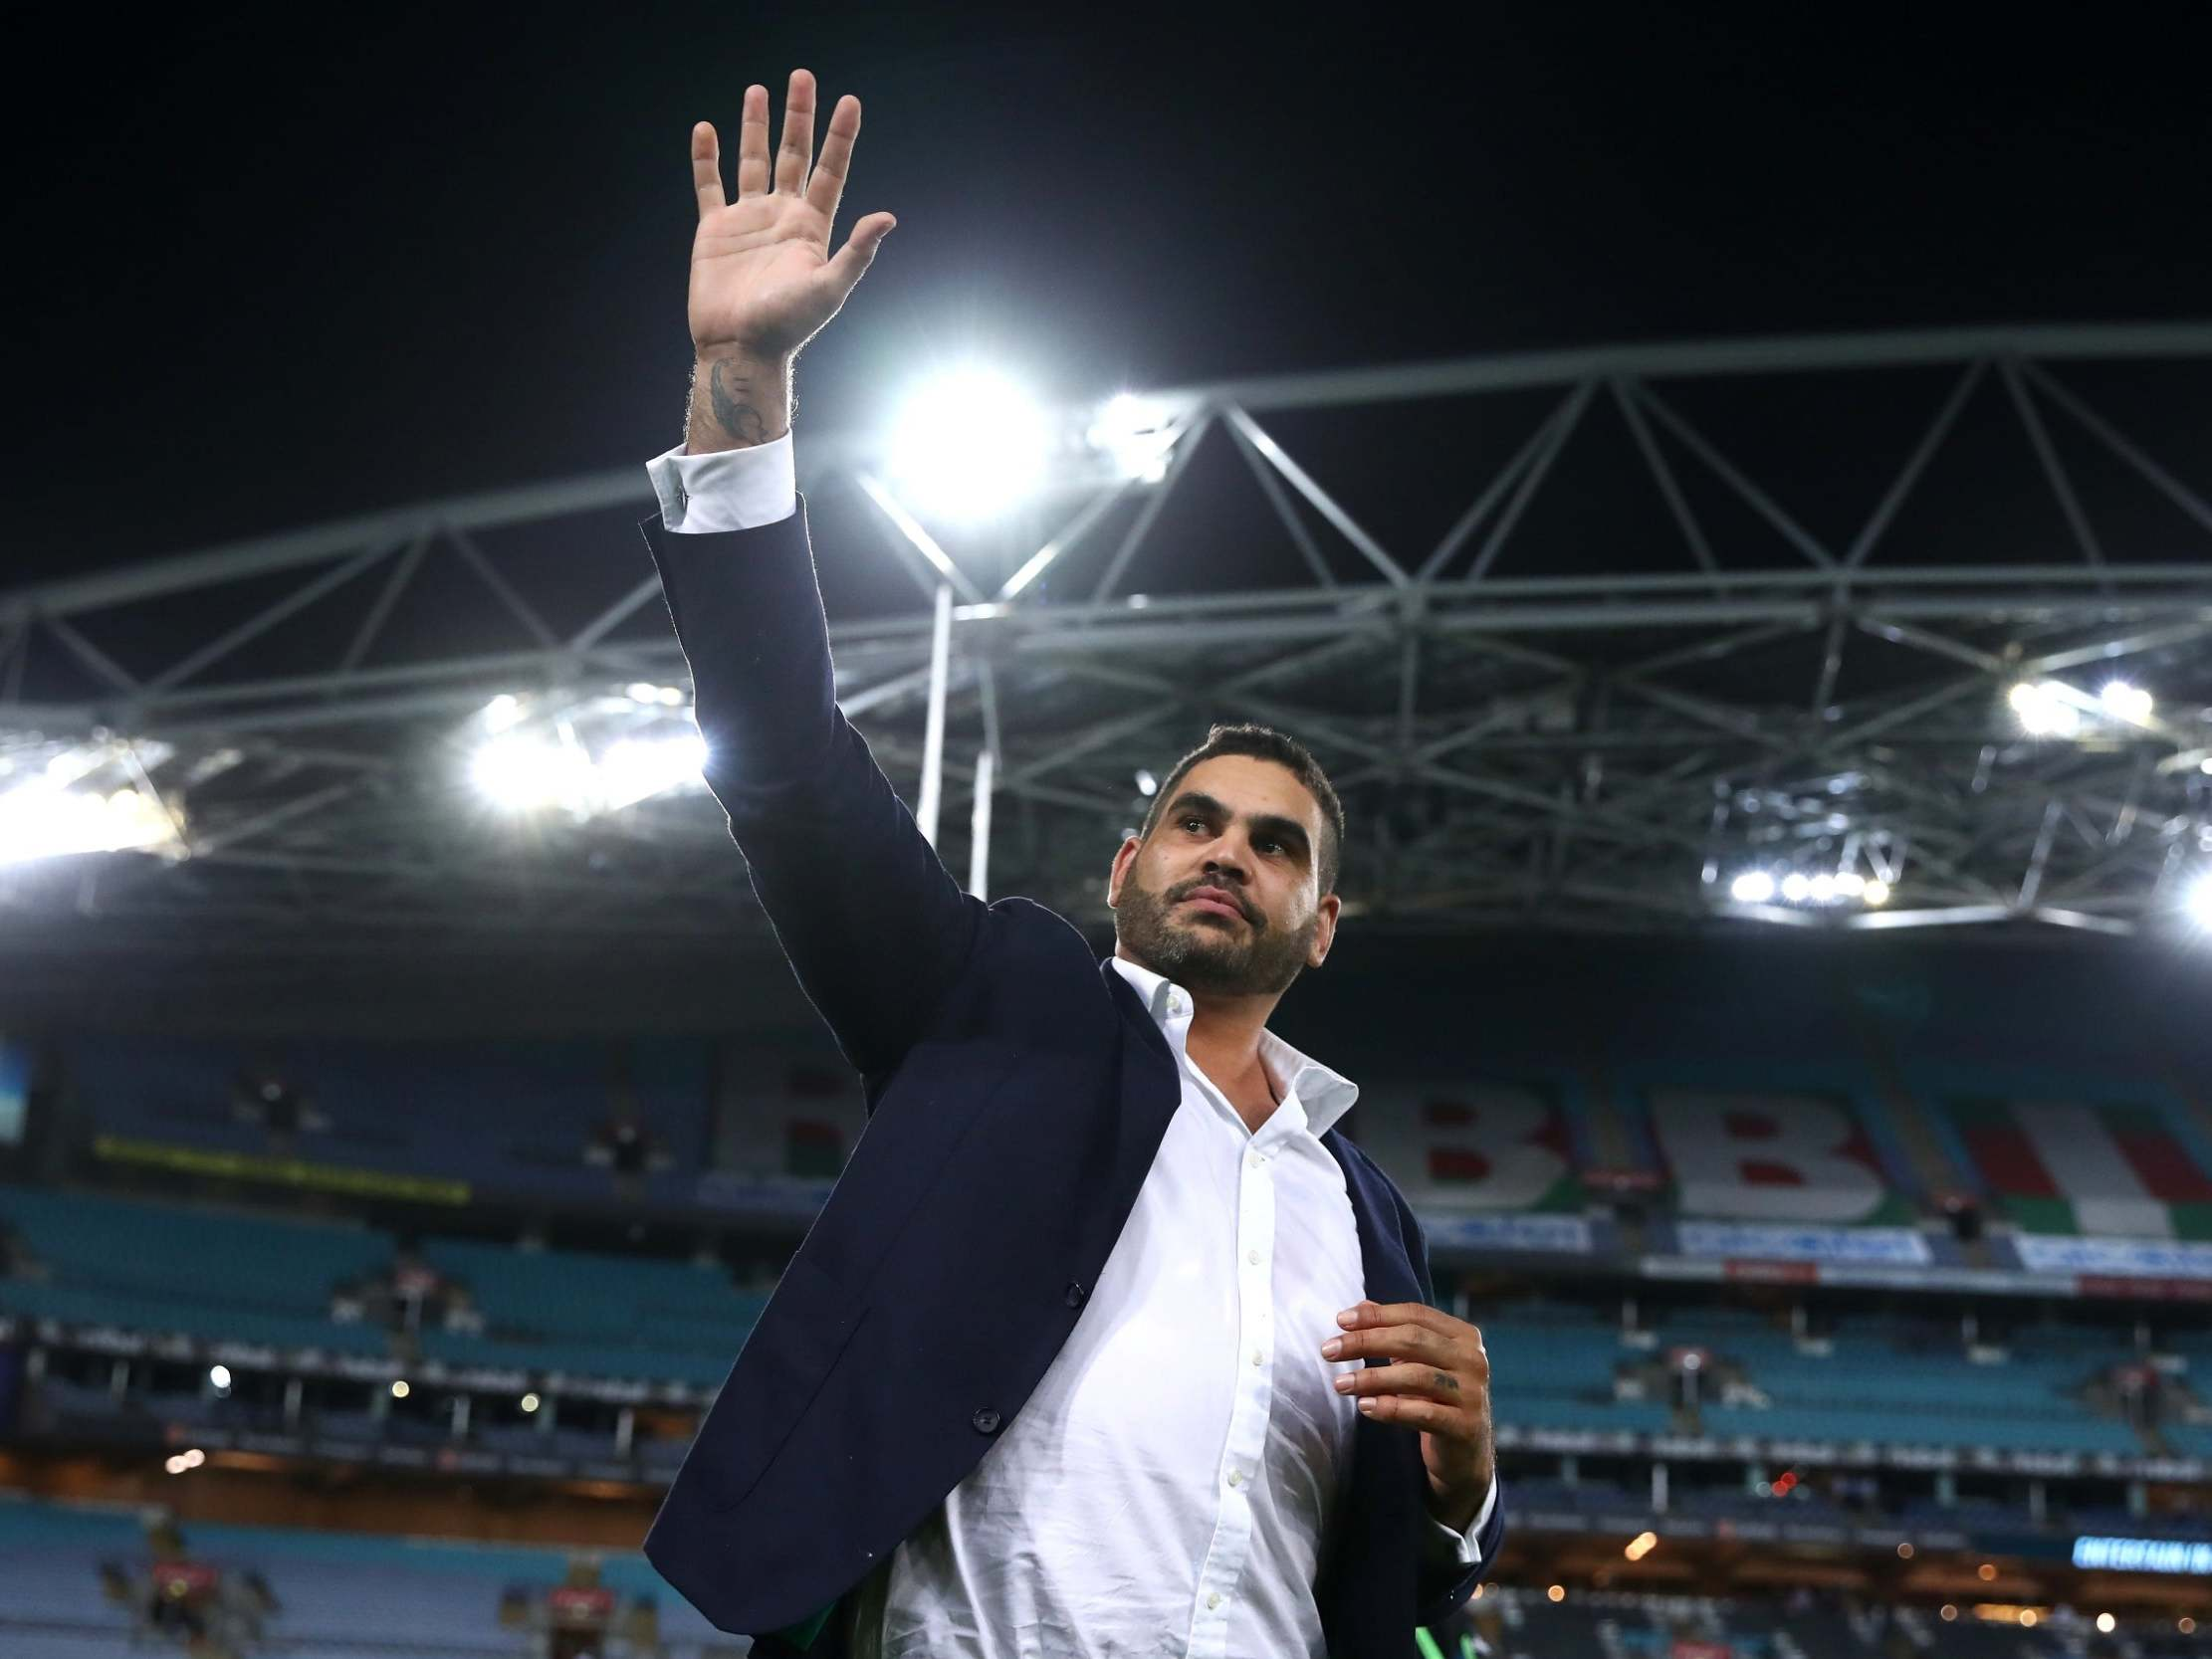 Greg Inglis enters mental health care facility two months after retirement, confirm South Sydney Rabbitohs